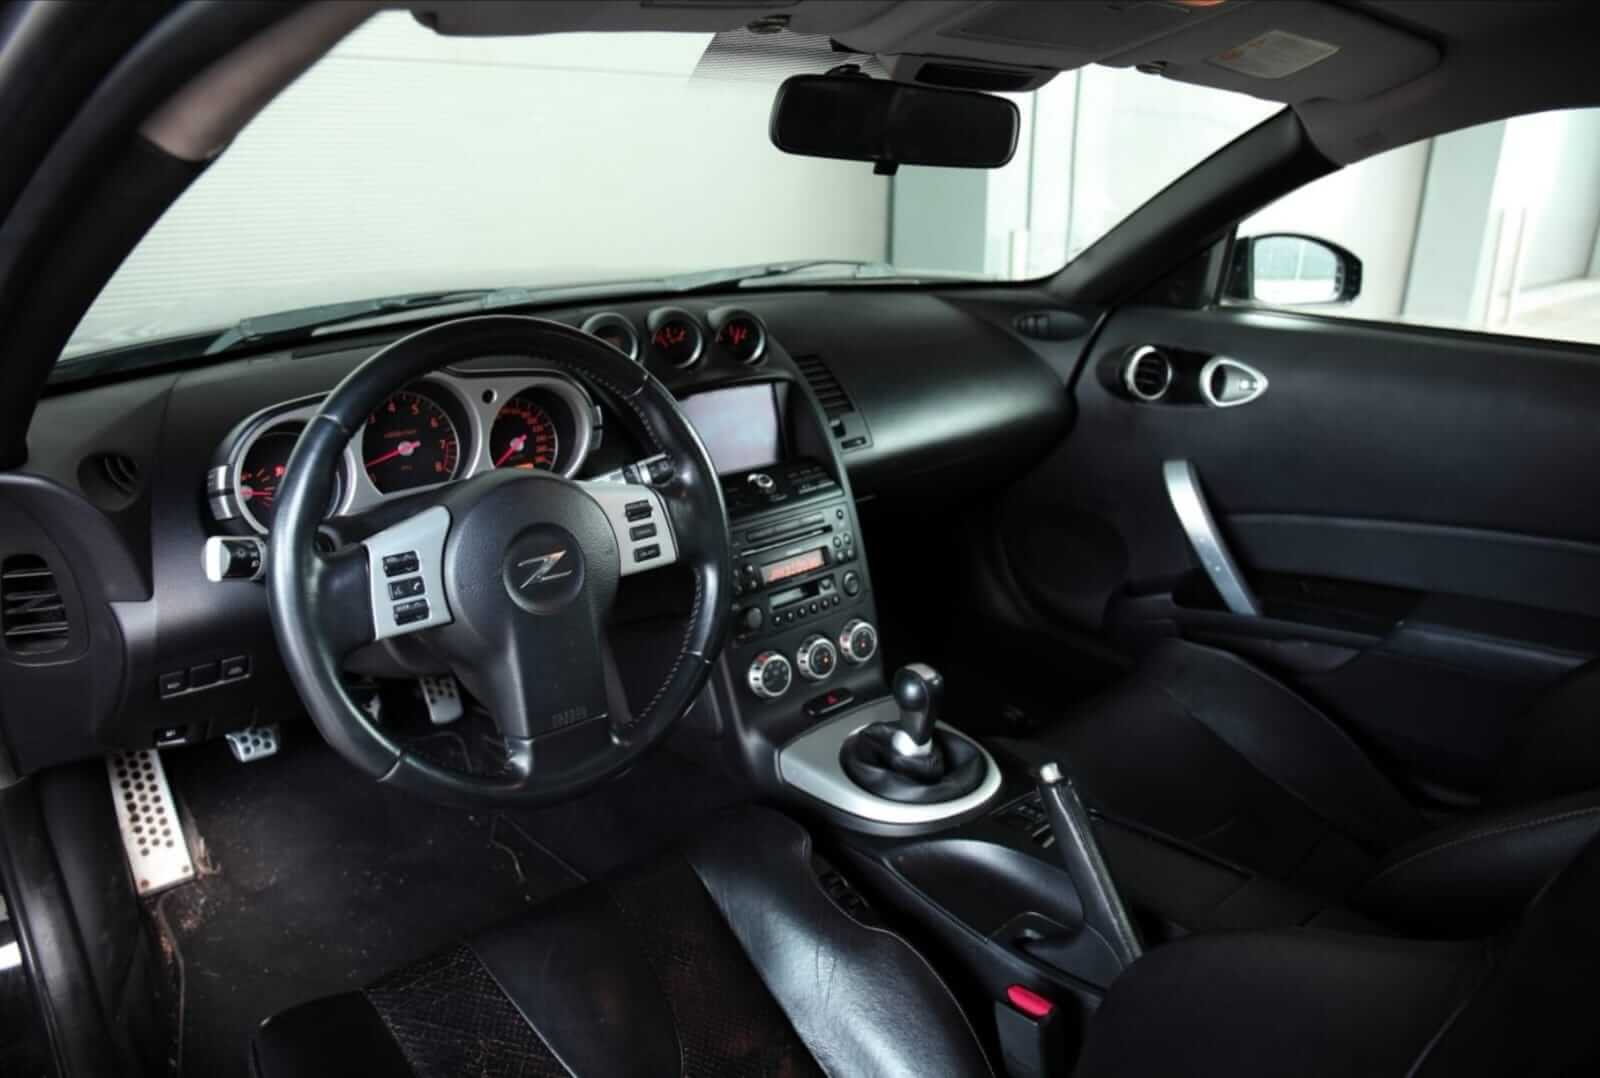 Nissan 350Z HR Track Edition 2008 interior – by Next Level Automotive – Go to nextlevelautomotive.eu